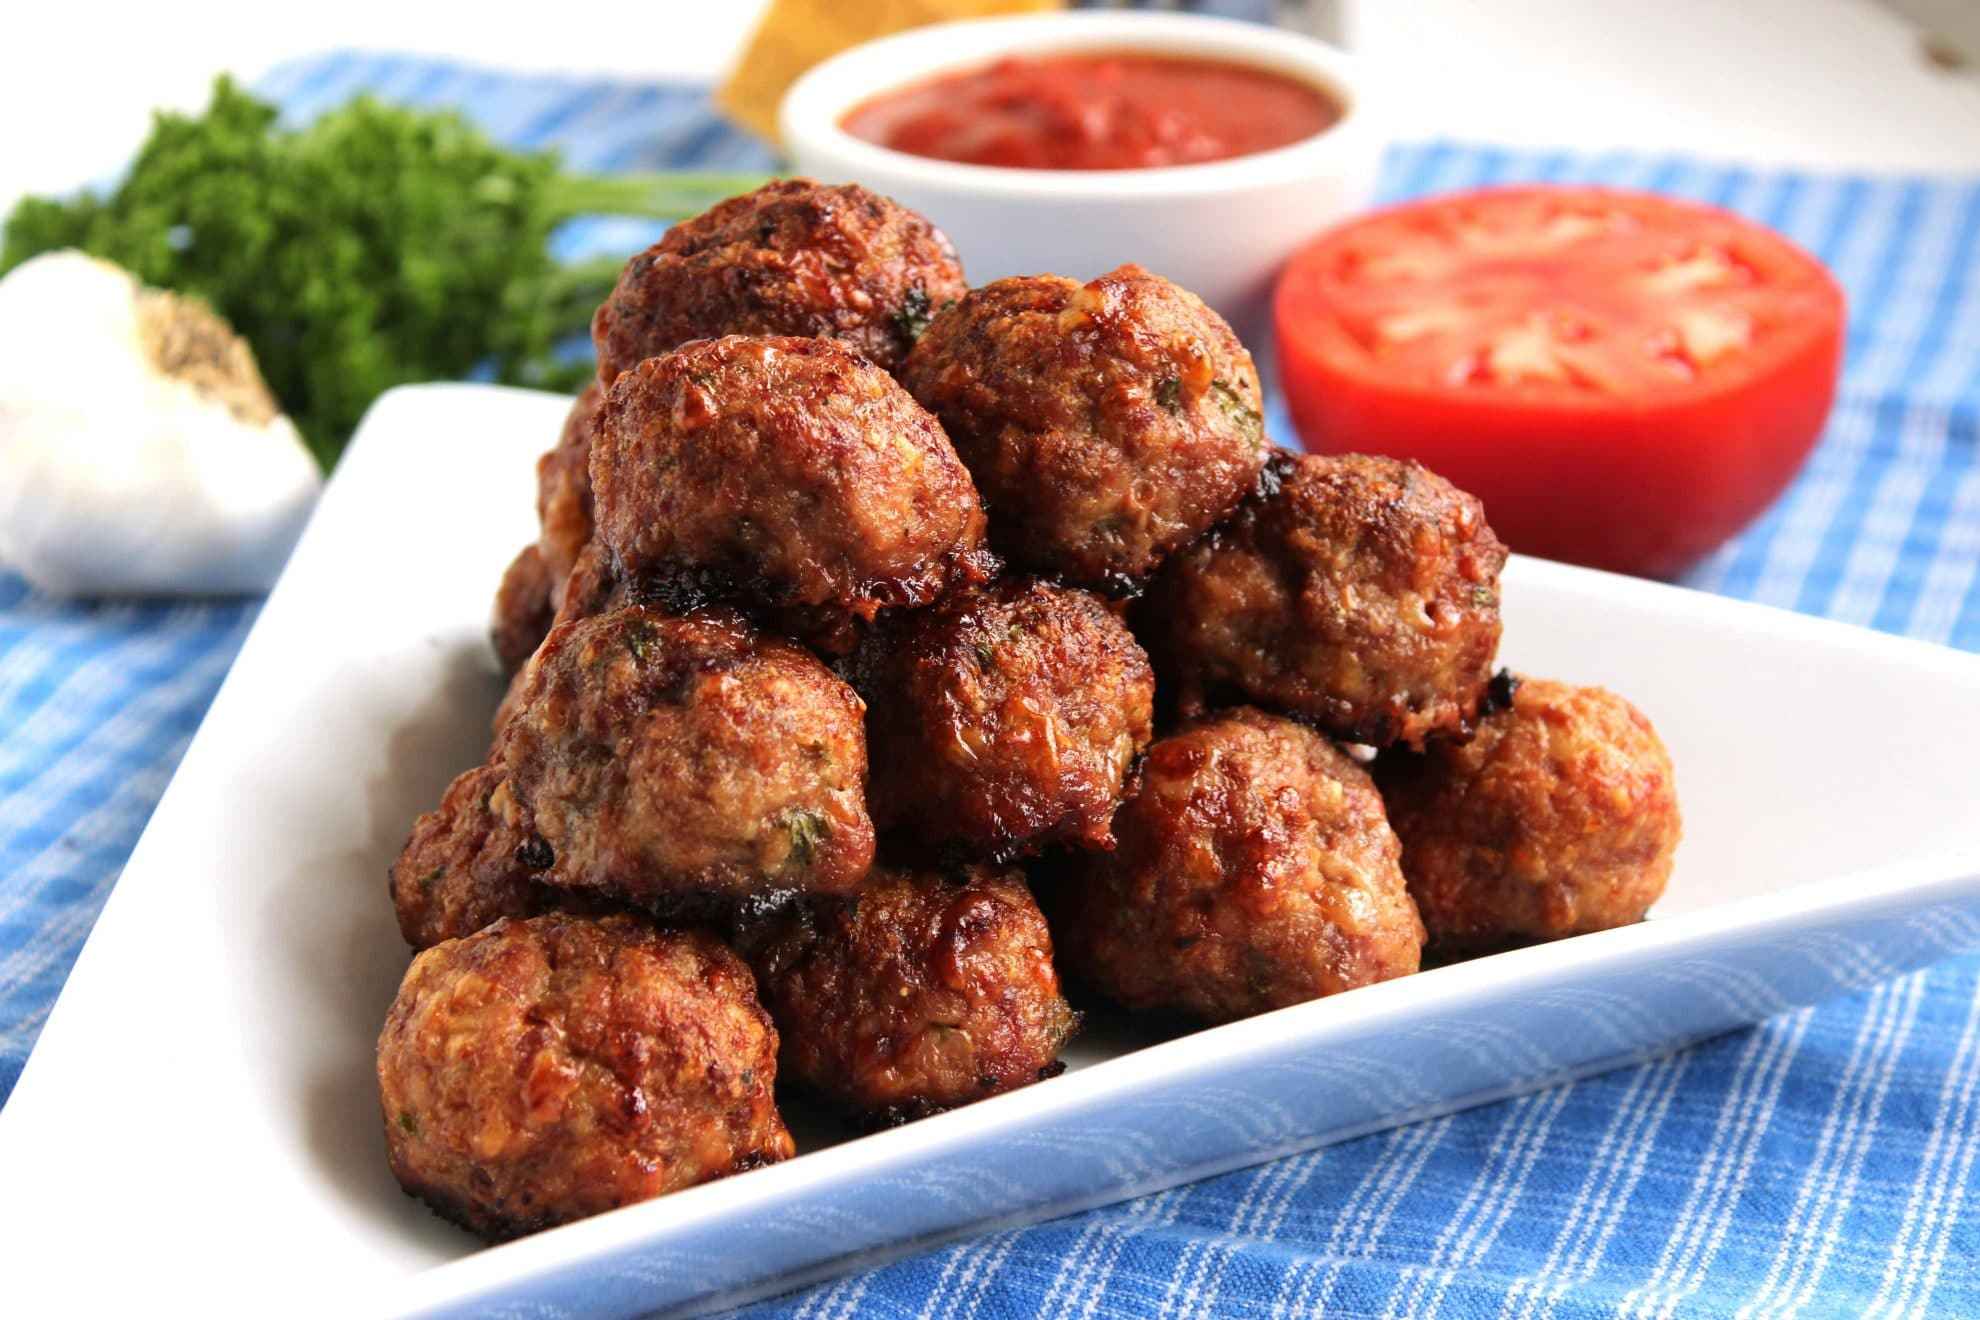 Indian Style Meatball Curry Recipe together with Slow Cooker French Dip Sandwich Au Jus moreover 5633 additionally 20 Healthy Slow Cooker Recipes For Family  fort Food as well 15 Quick And Easy Dinners. on quinoa pork meatballs